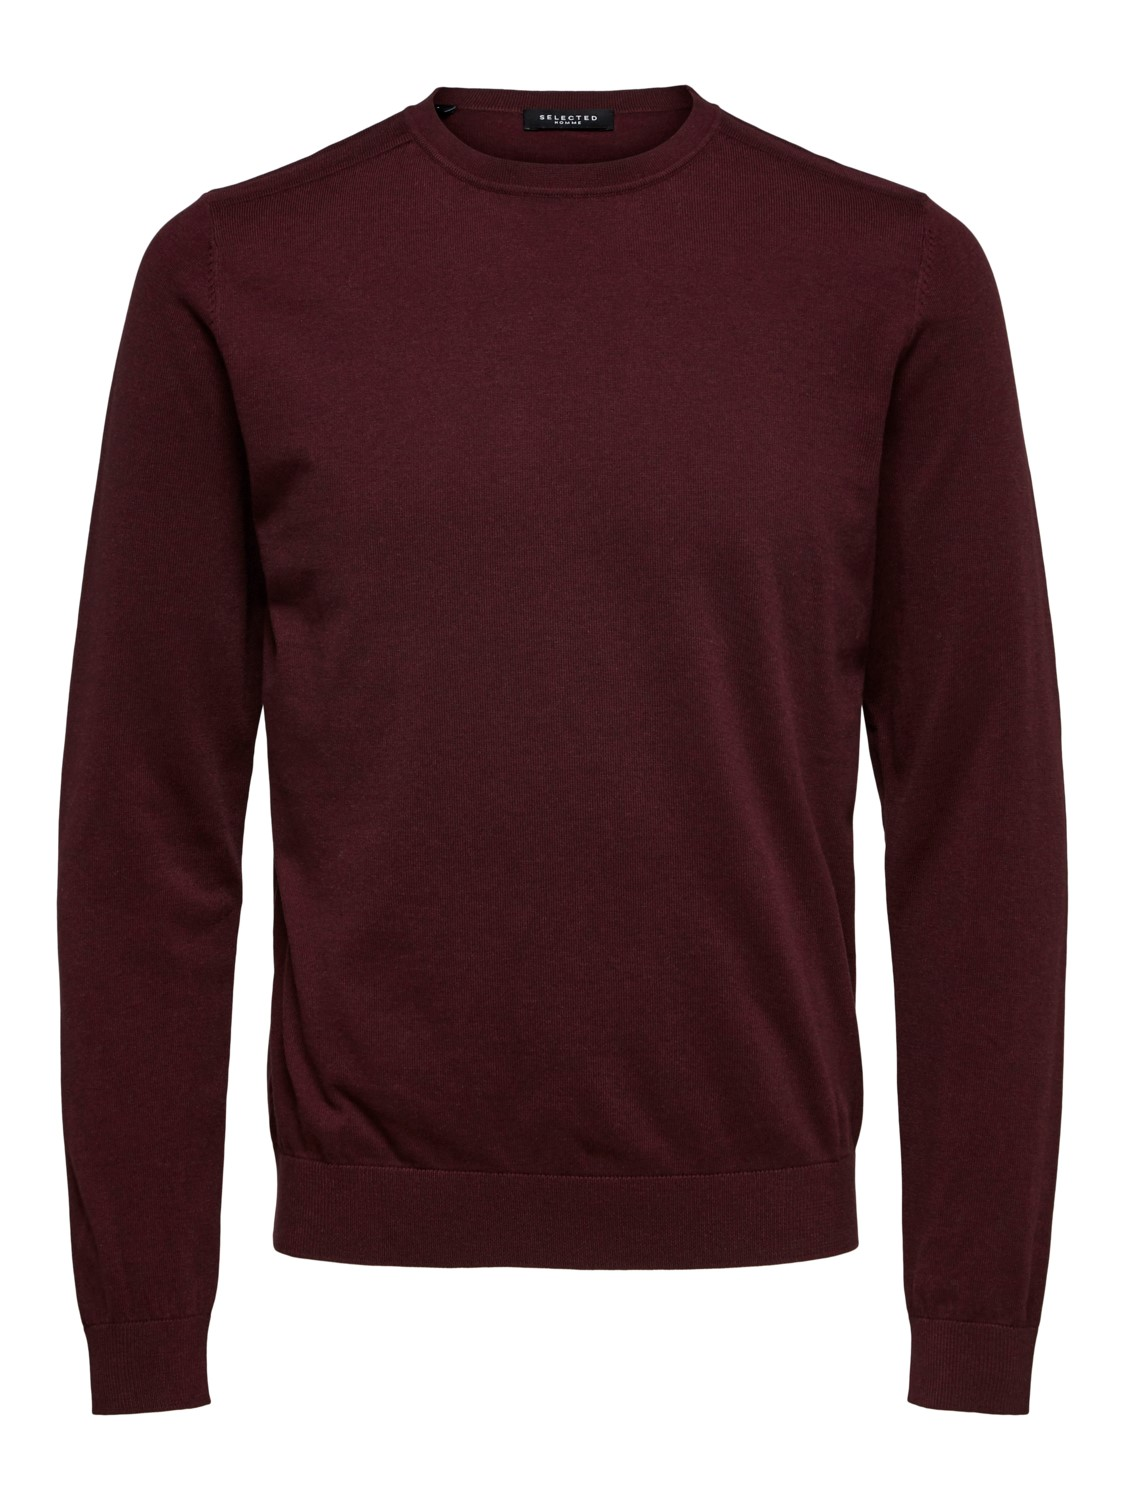 Selected - slhberg crew neck Strik winetasting | Gate36 Hobro